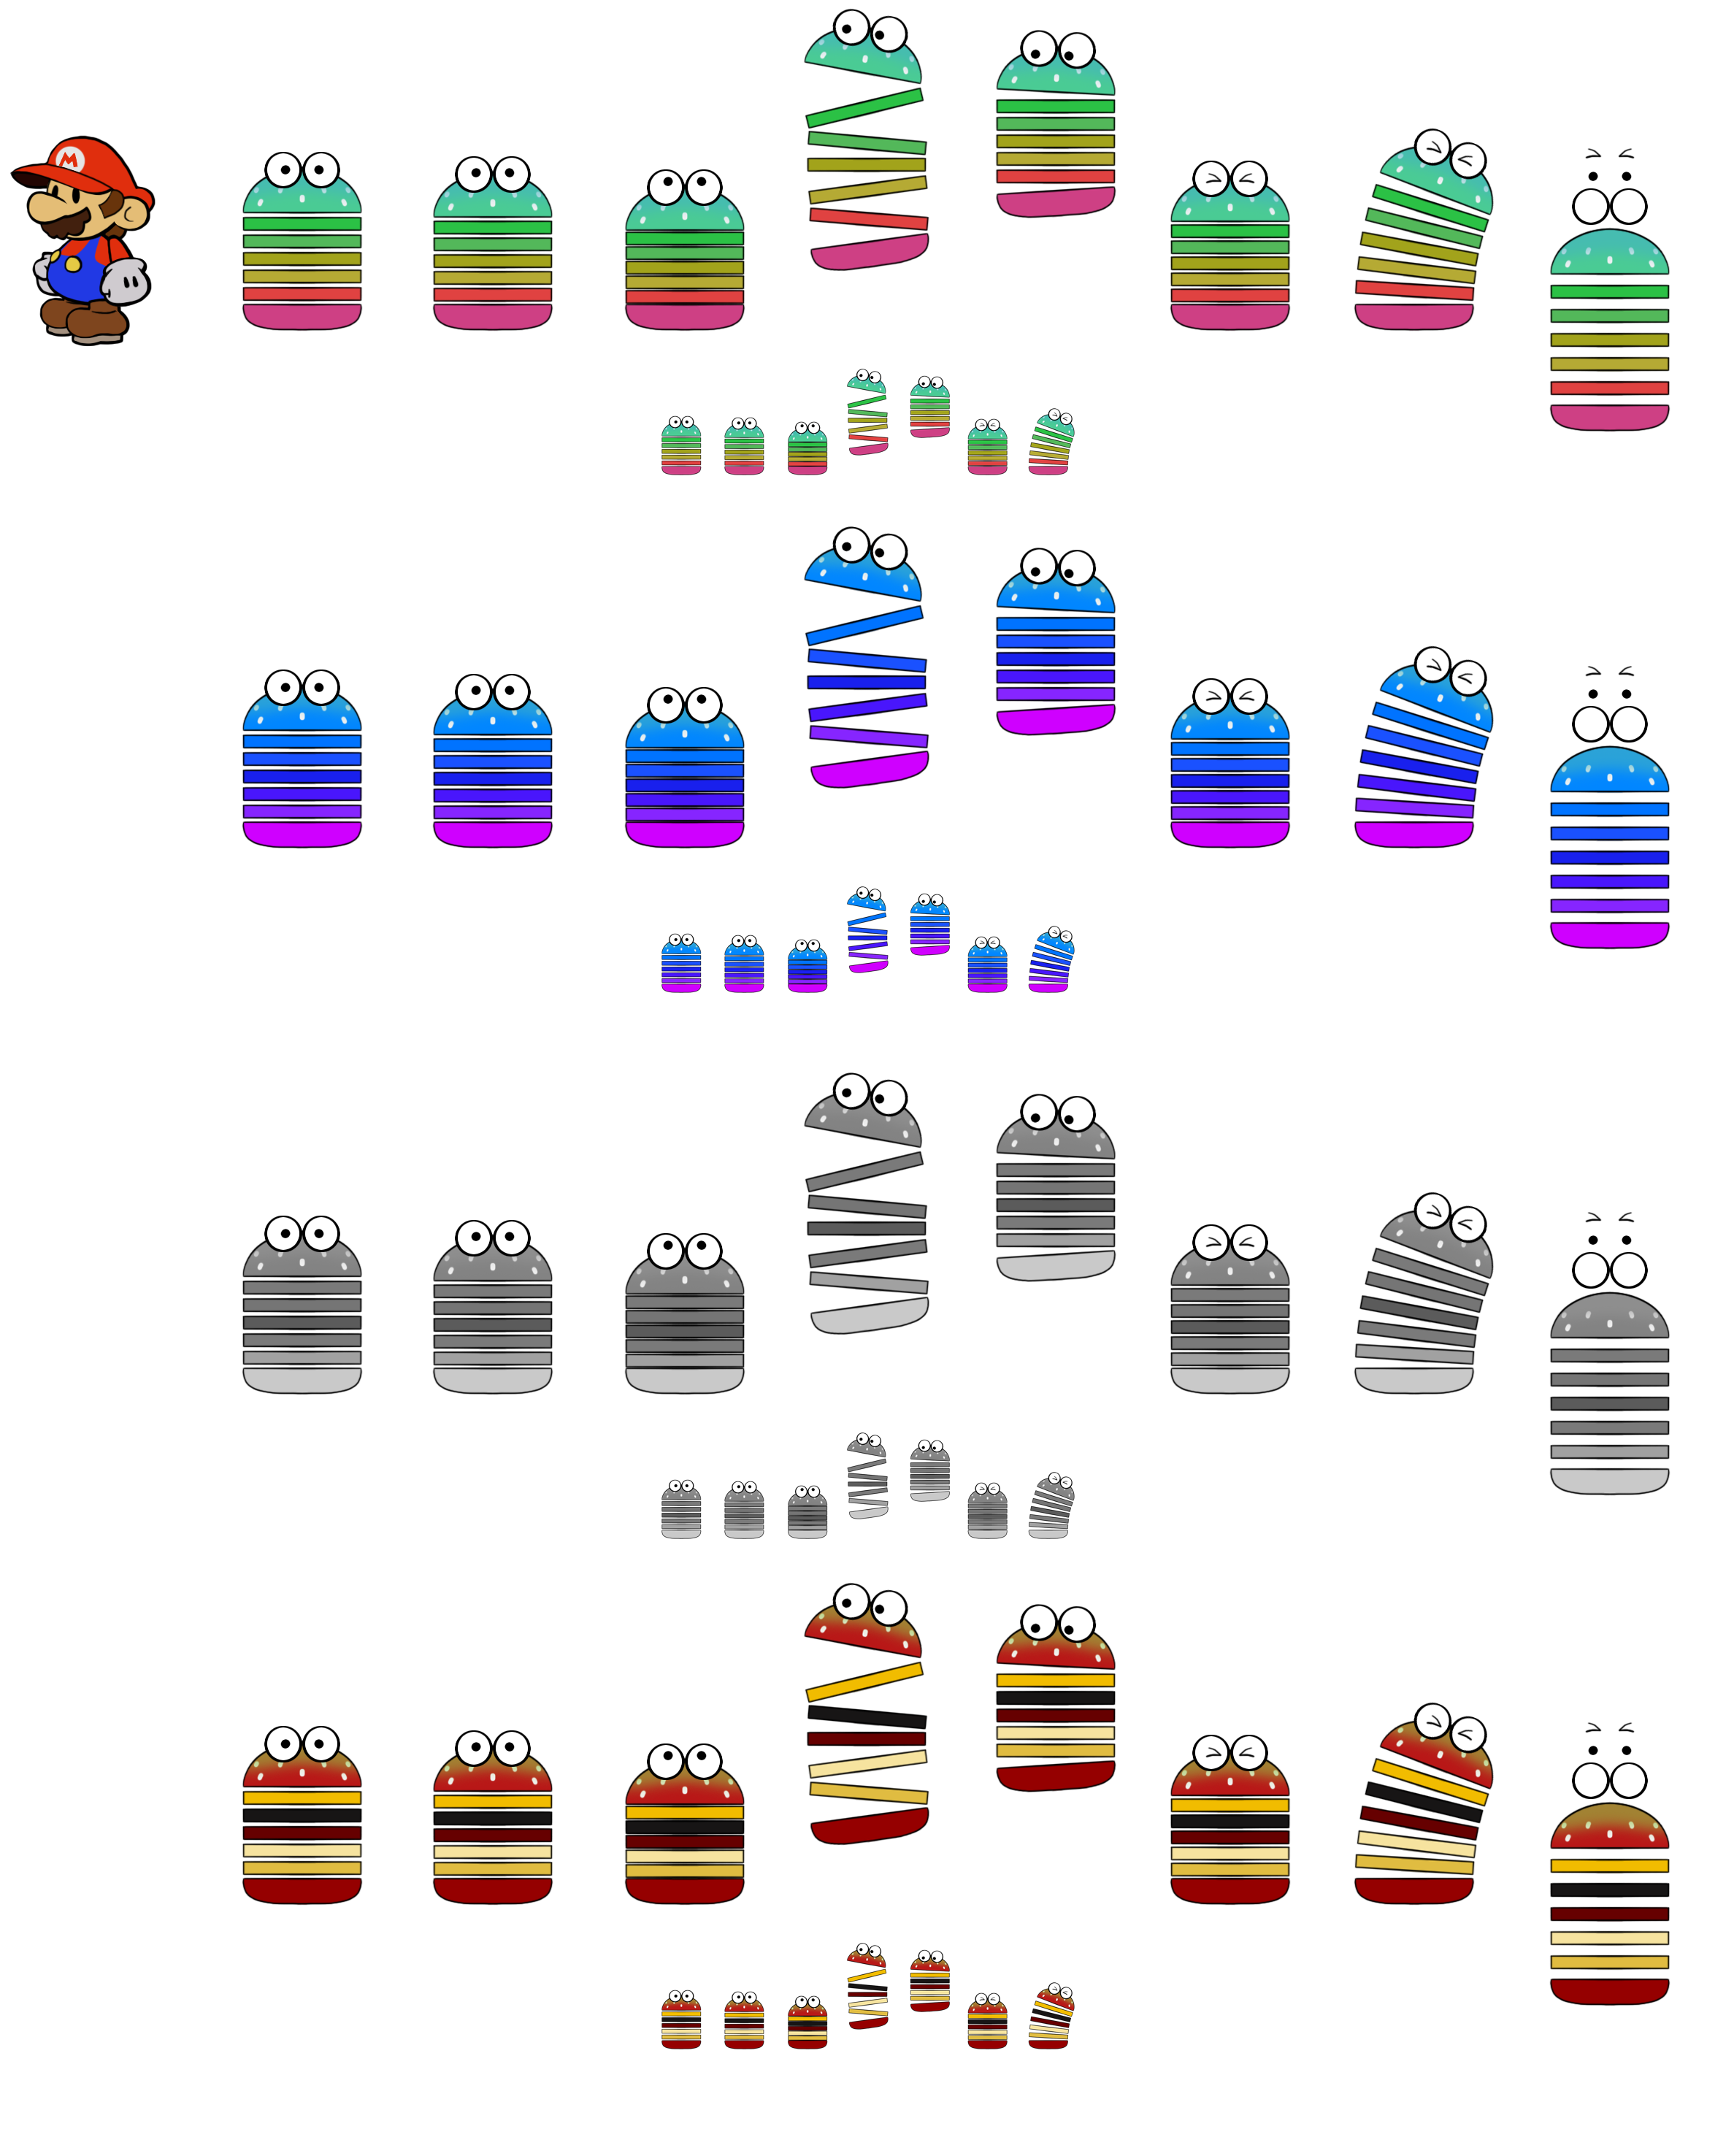 Sproing-Oing Family (Paper Mario Style)